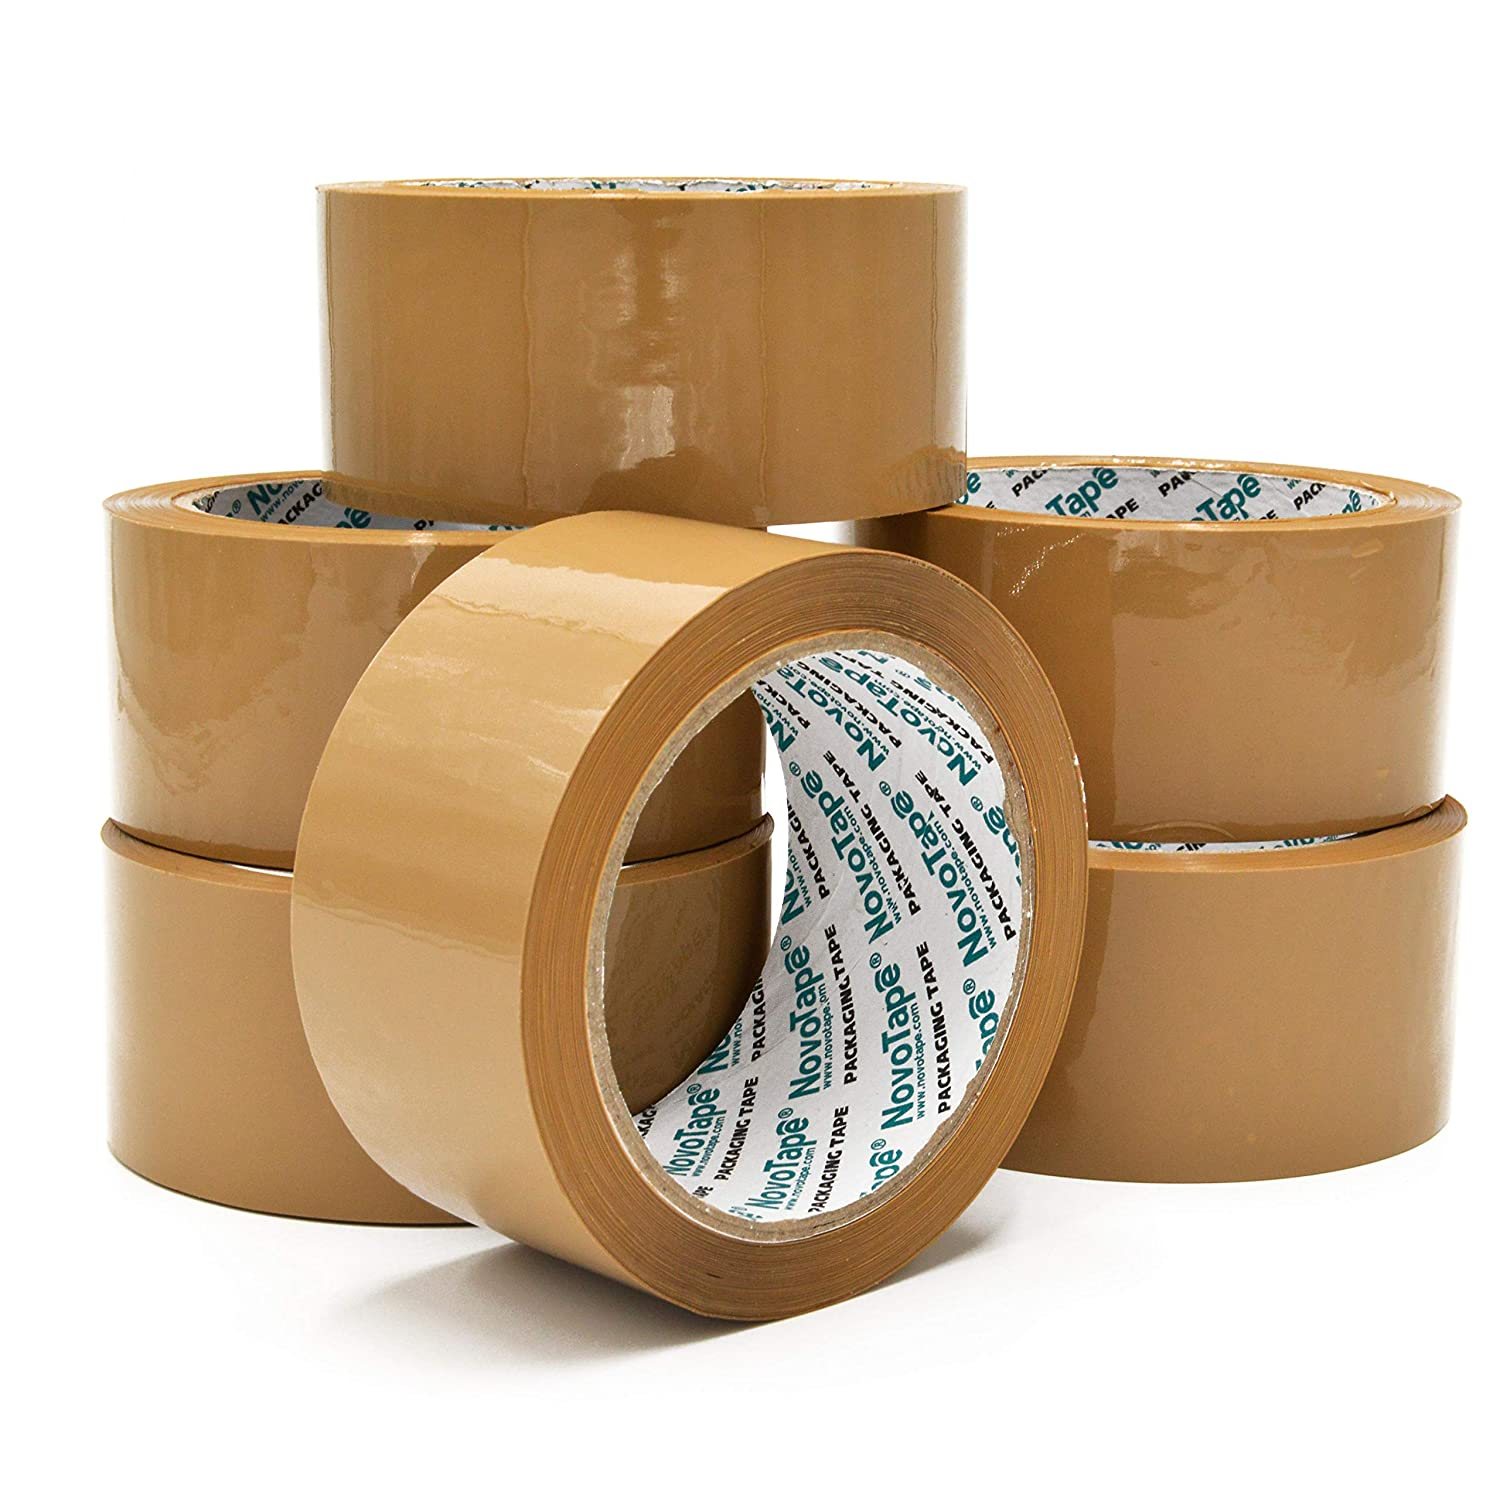 NOVOTAPE Heavy Duty Brown Packaging Tape 6 Rolls 48mm x 66m For Strong, Secure and Sticky Seal For Packing Parcels and Boxes POWERFUL TOOLS LTD NTPT486645B